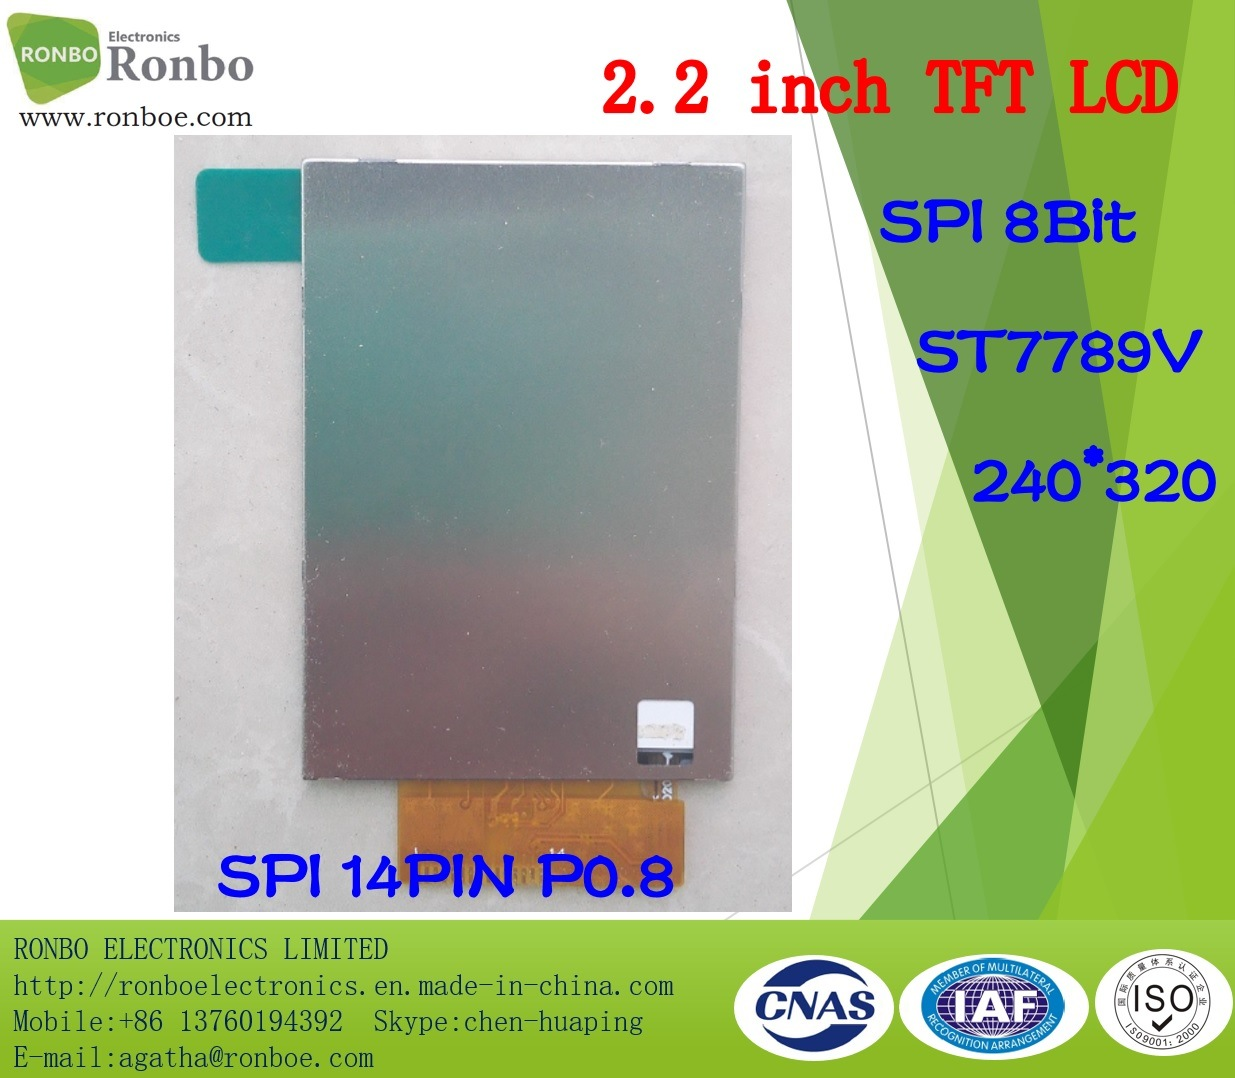 2.2 Inch 240*320 Spi 14pin TFT LCD Panel, St7789V with Option Touch Screen